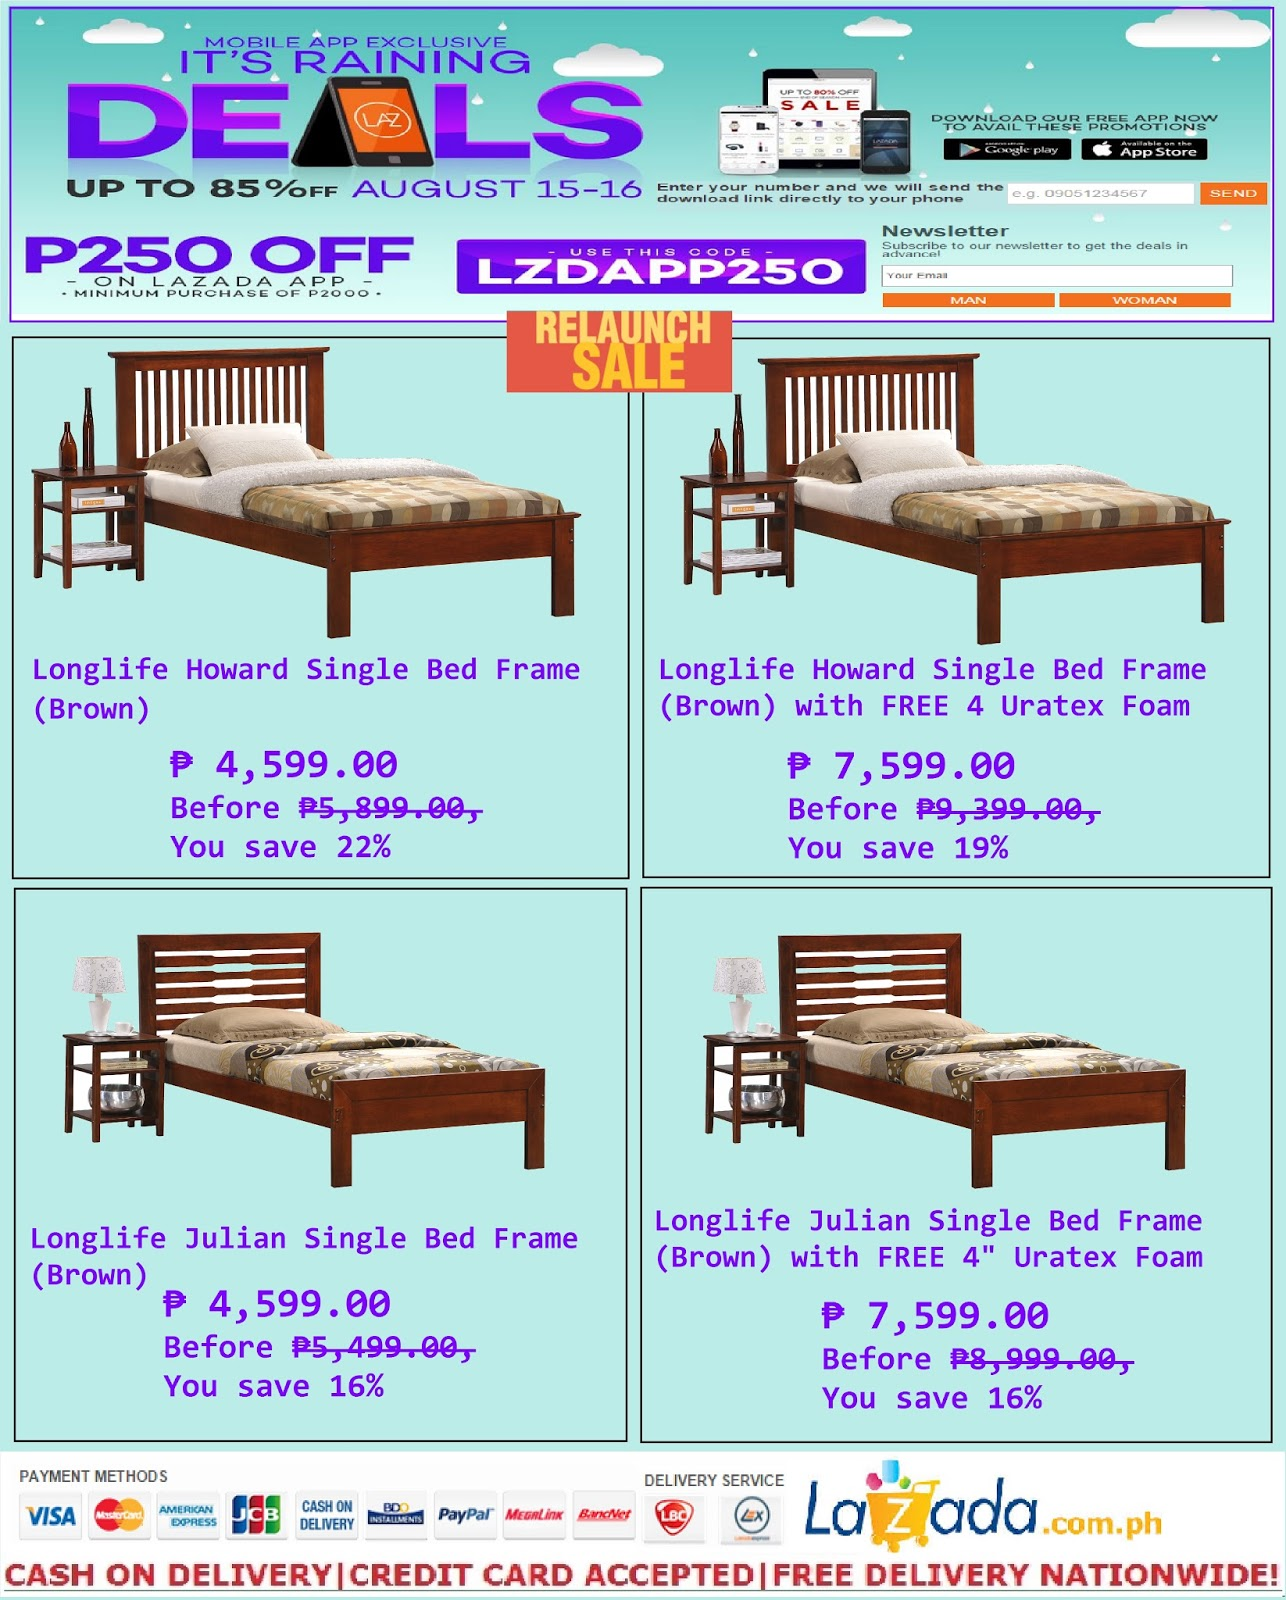 Beau Get P250.00 Discount On Longlife Single Size Bed Frames At Lazada